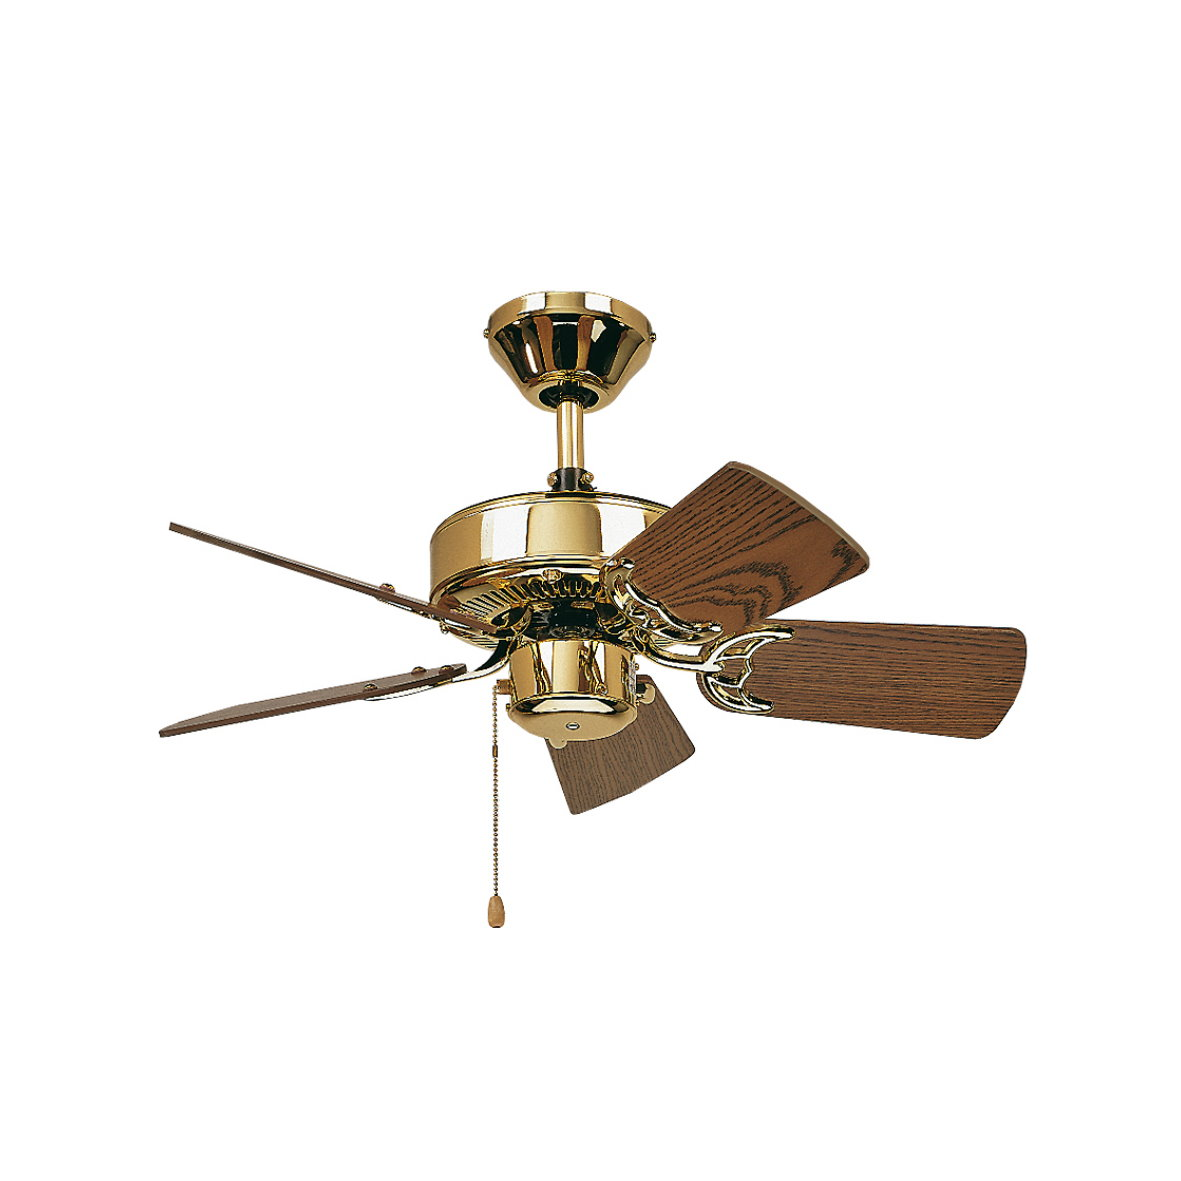 casafan deckenventilator royal classic klassiker decke ventilator ceiling fan. Black Bedroom Furniture Sets. Home Design Ideas